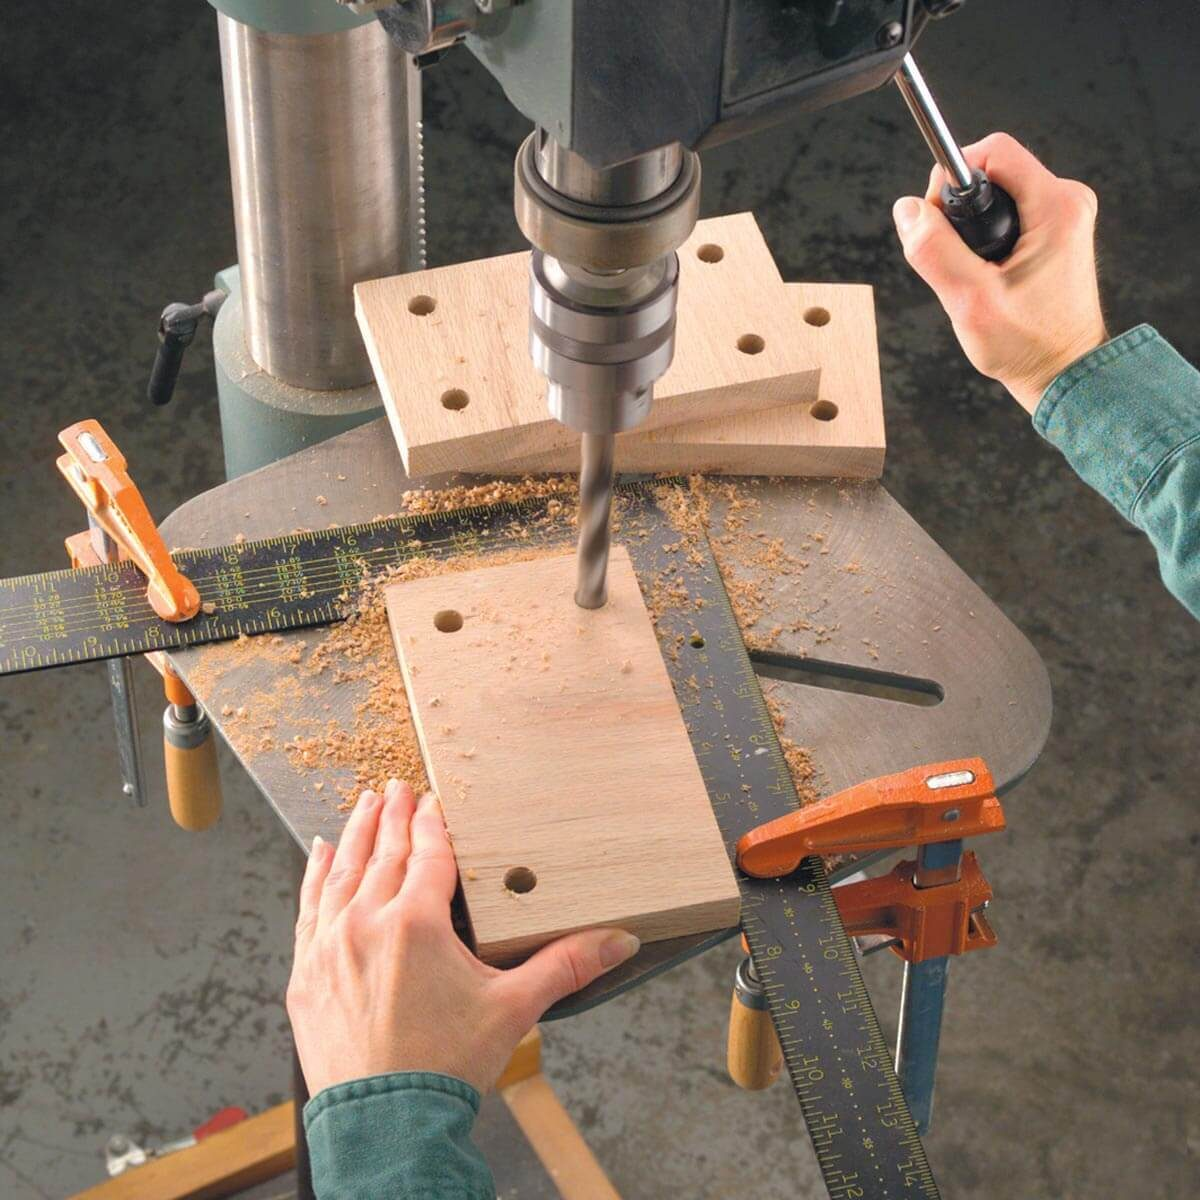 Framing square drilling jig